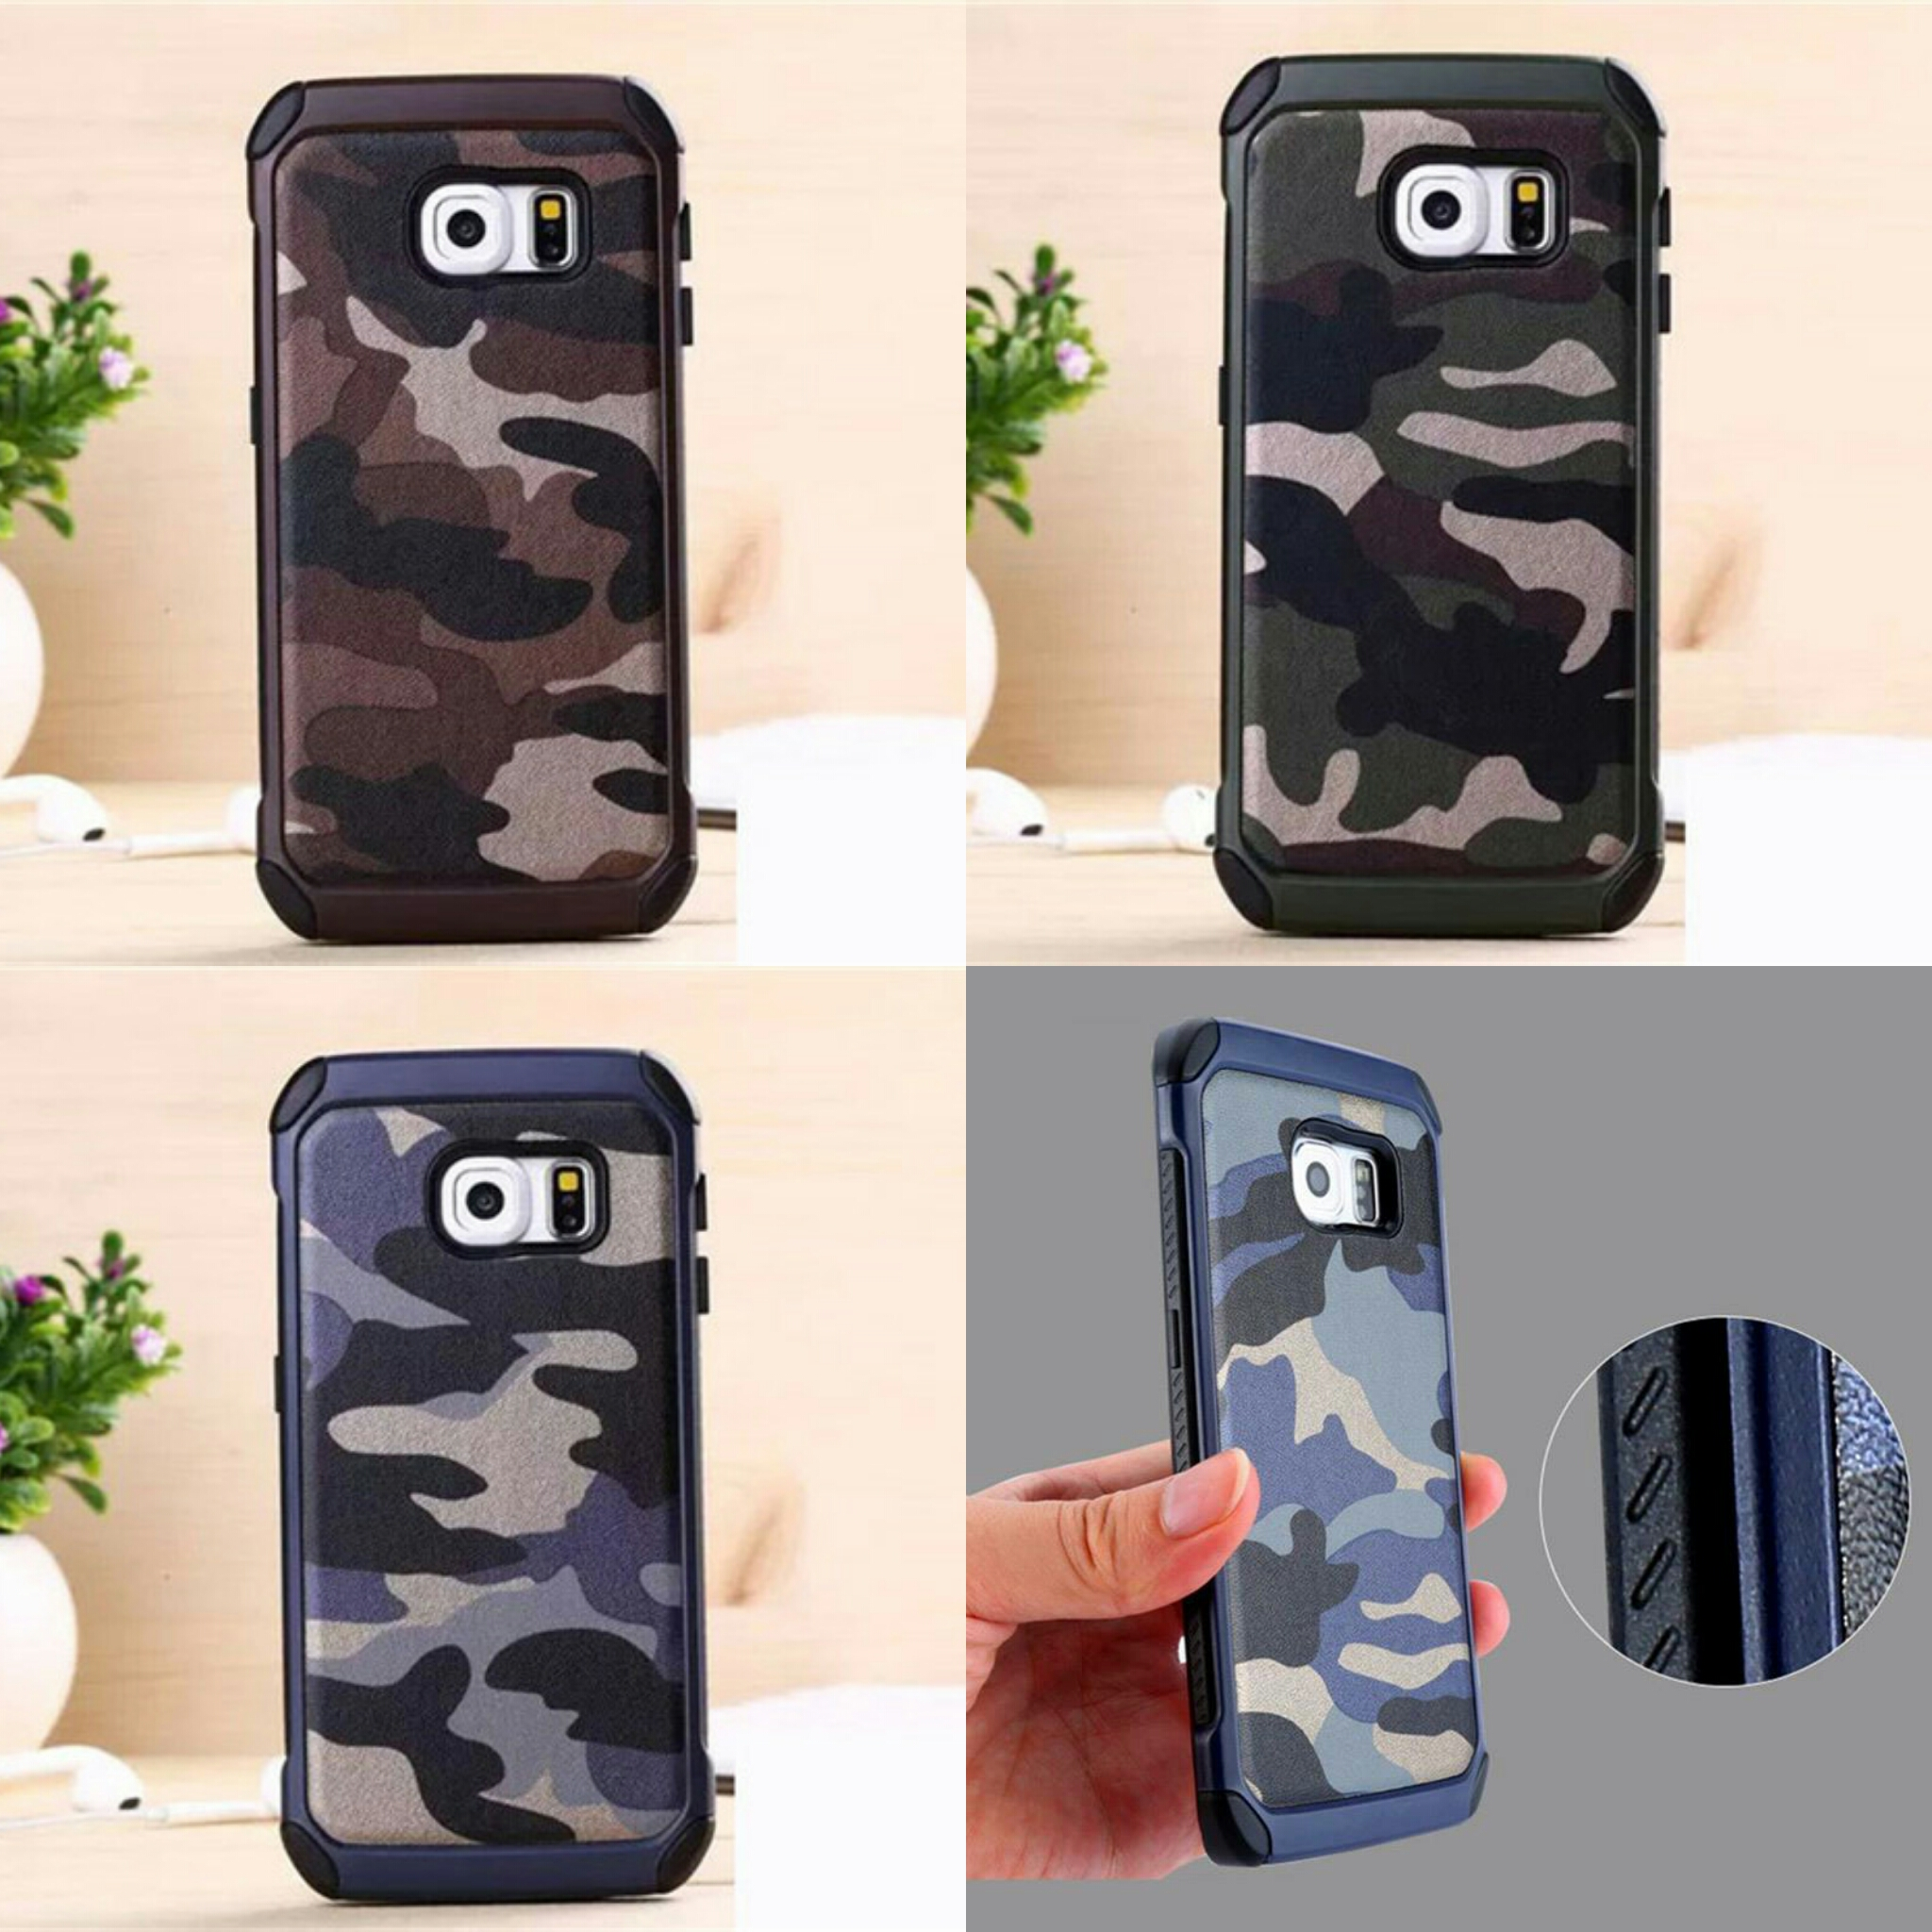 Jual Casing Hp Samsung Galaxy S6 S7 S6 Edge S7 Edge S6 Edge Plus Army Case The Villains Shop